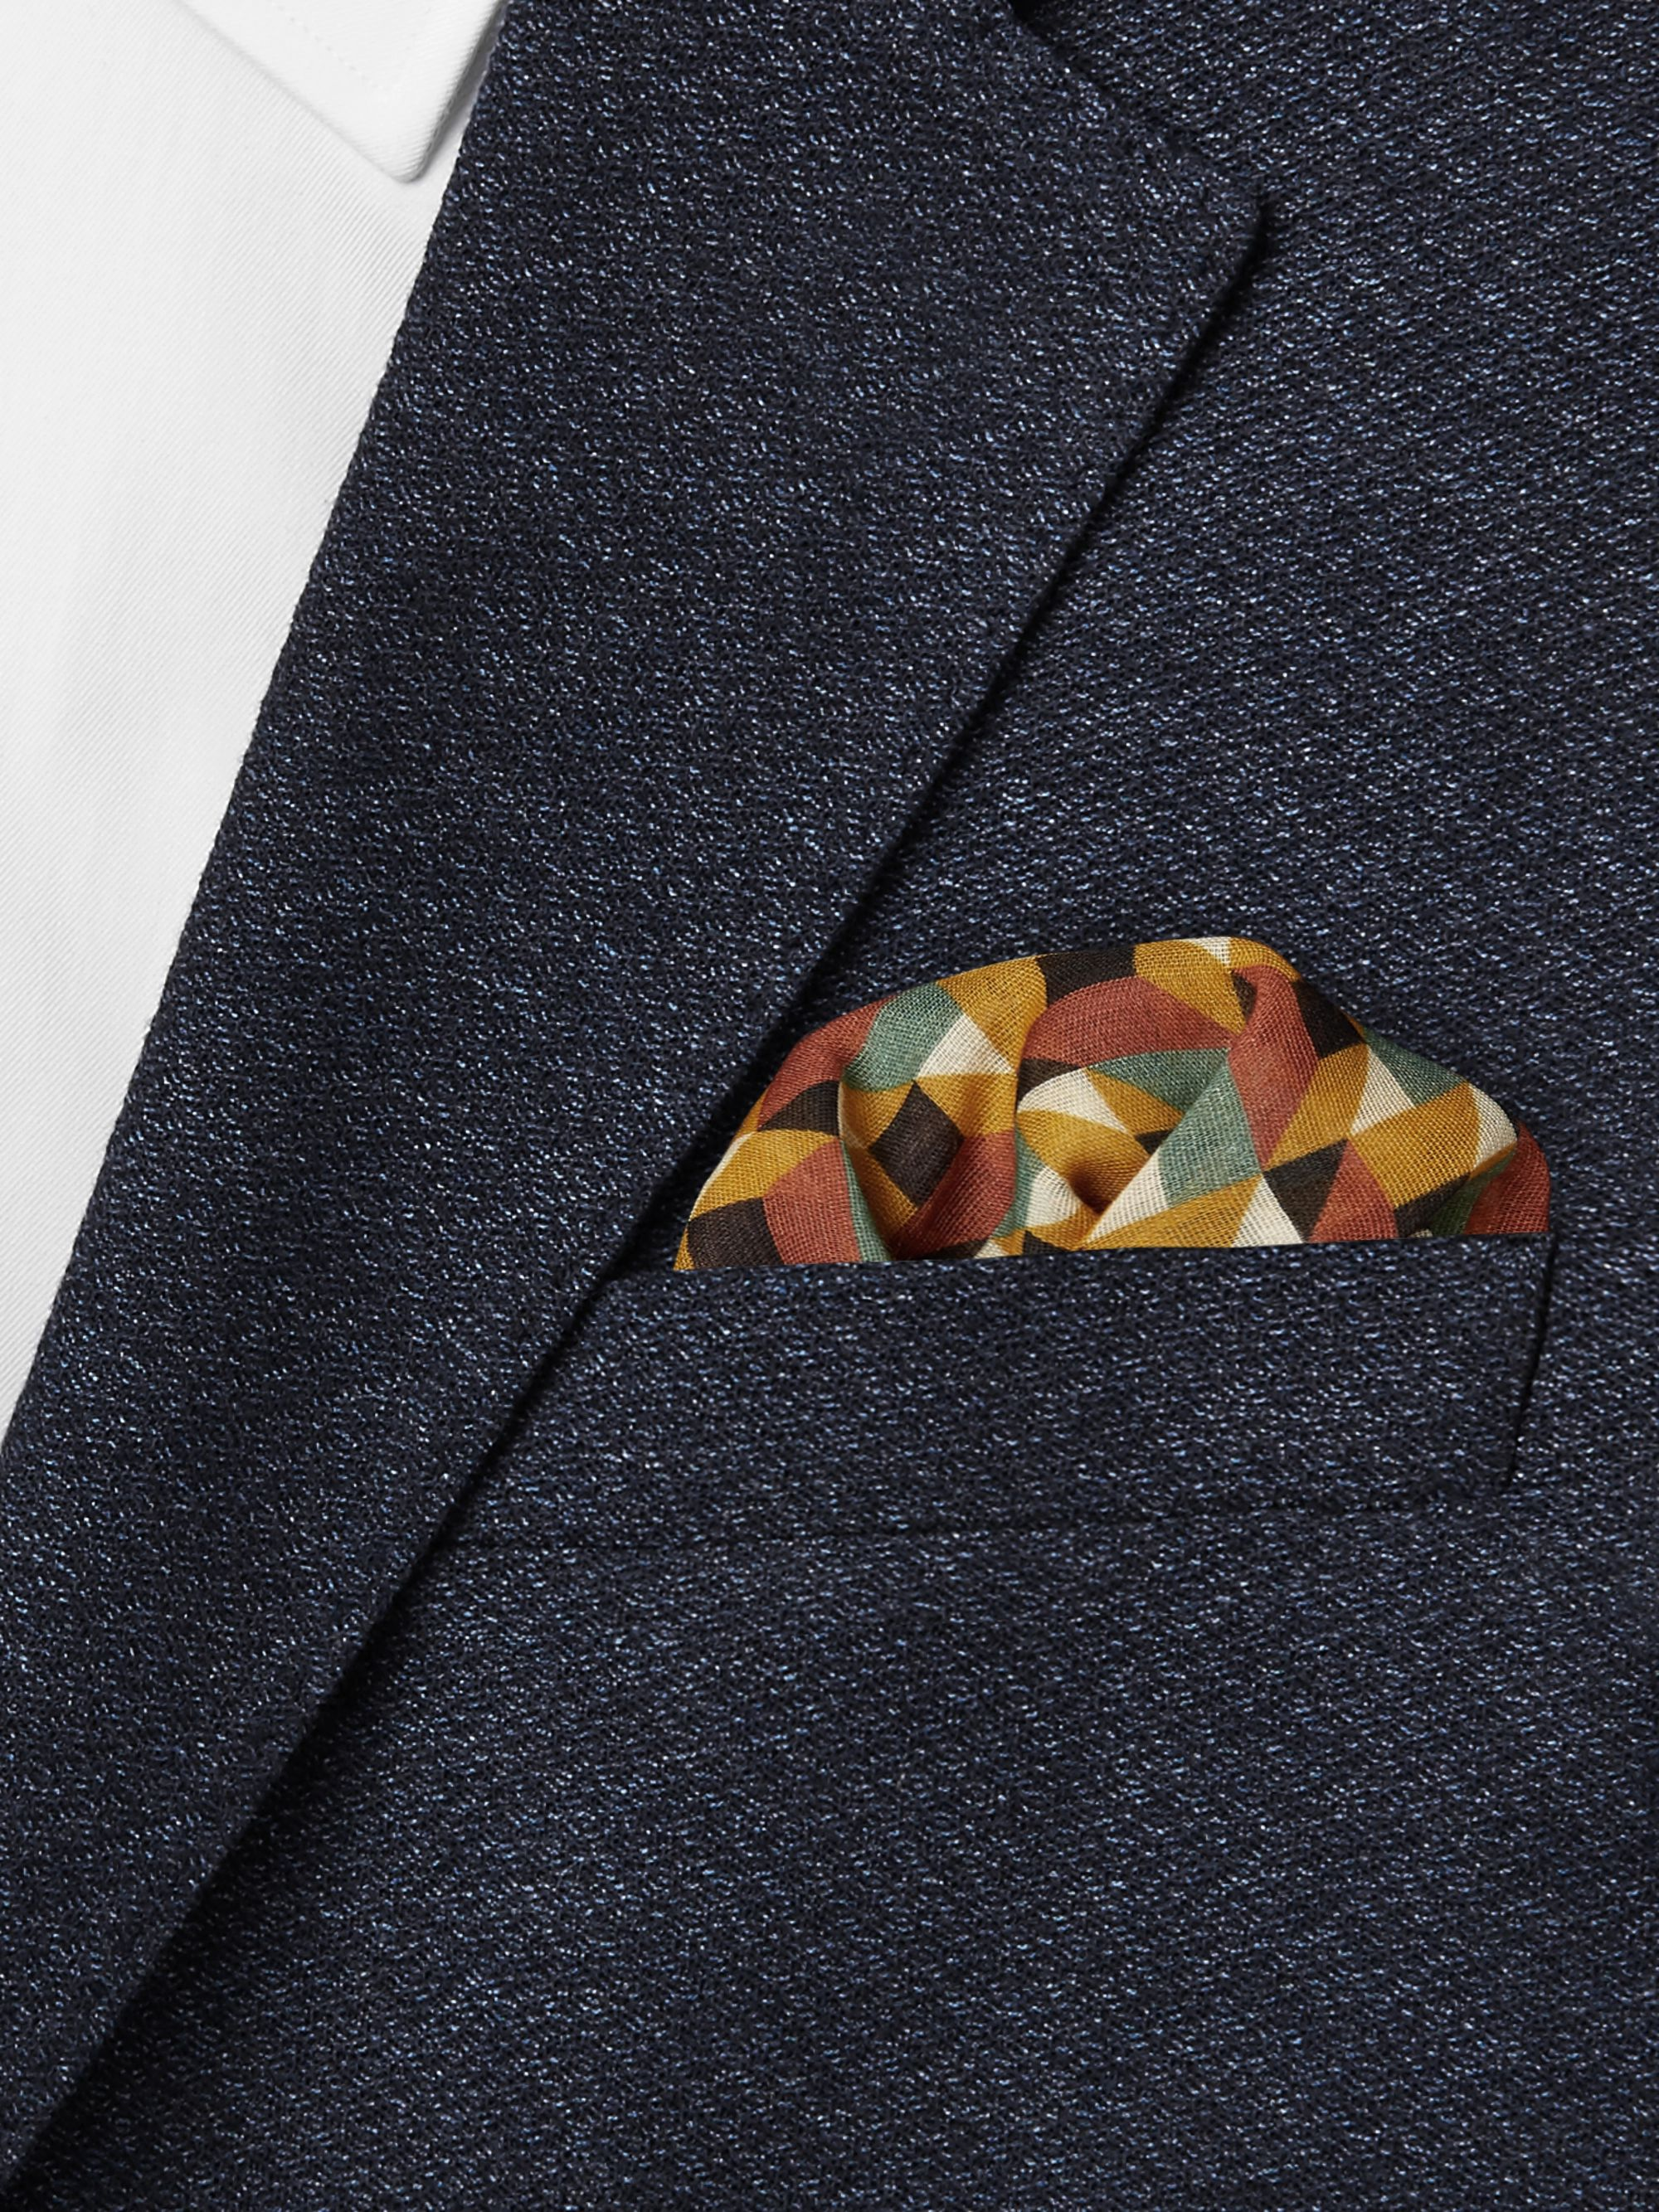 Drake's Printed Cotton, Modal and Cashmere-Blend Pocket Square